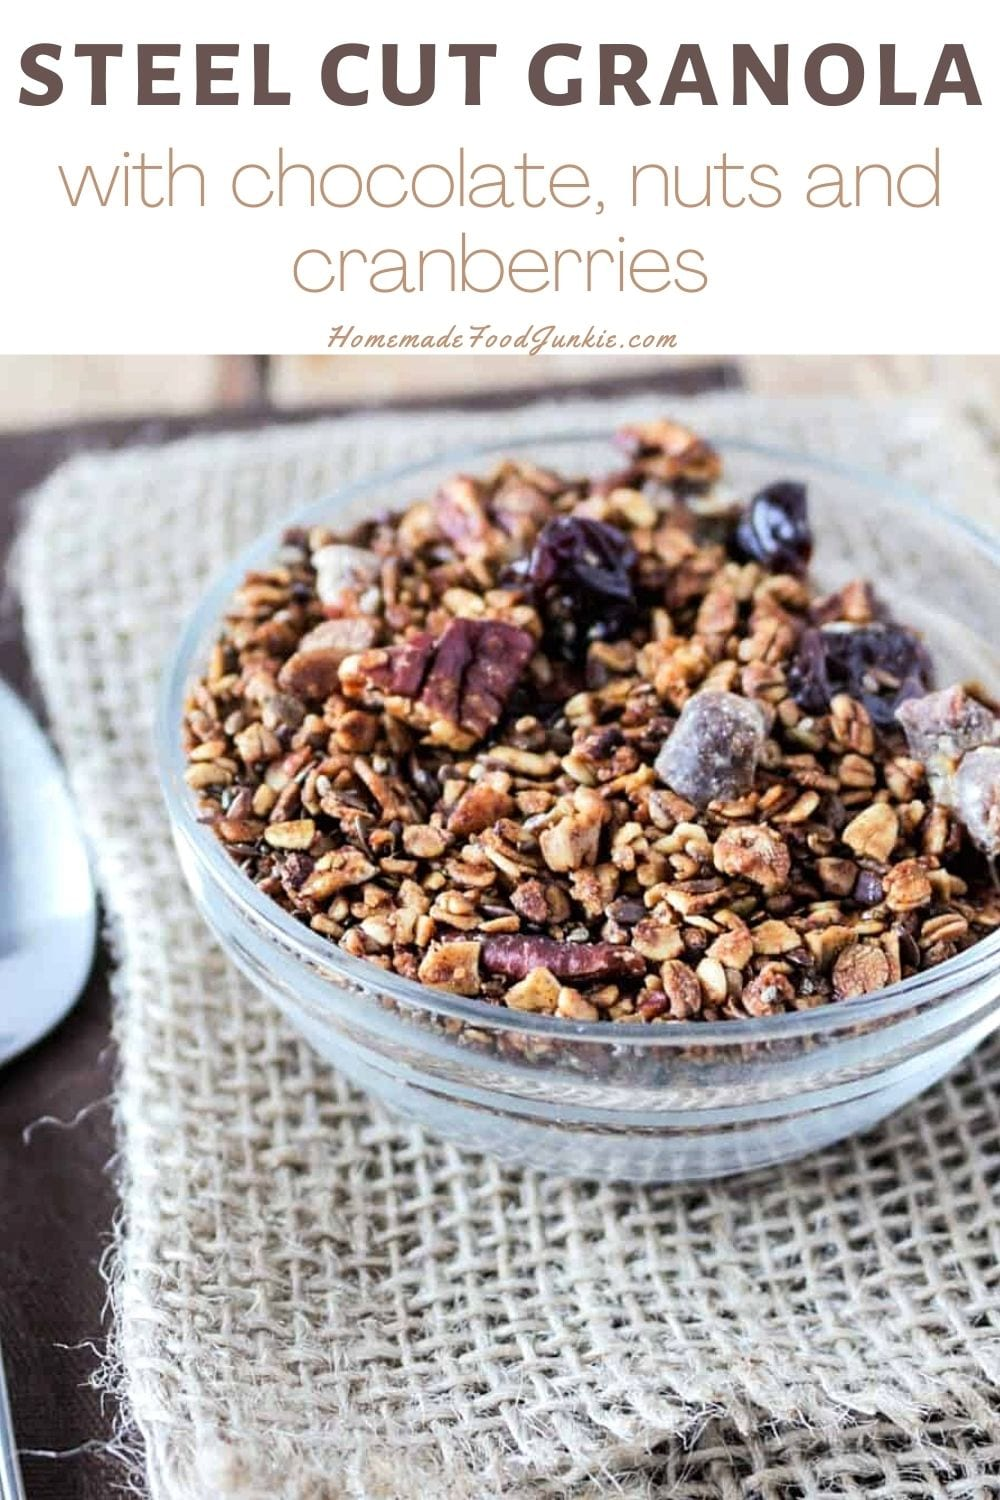 Steel cut granola with chocolate, nuts and cranberries-pin image